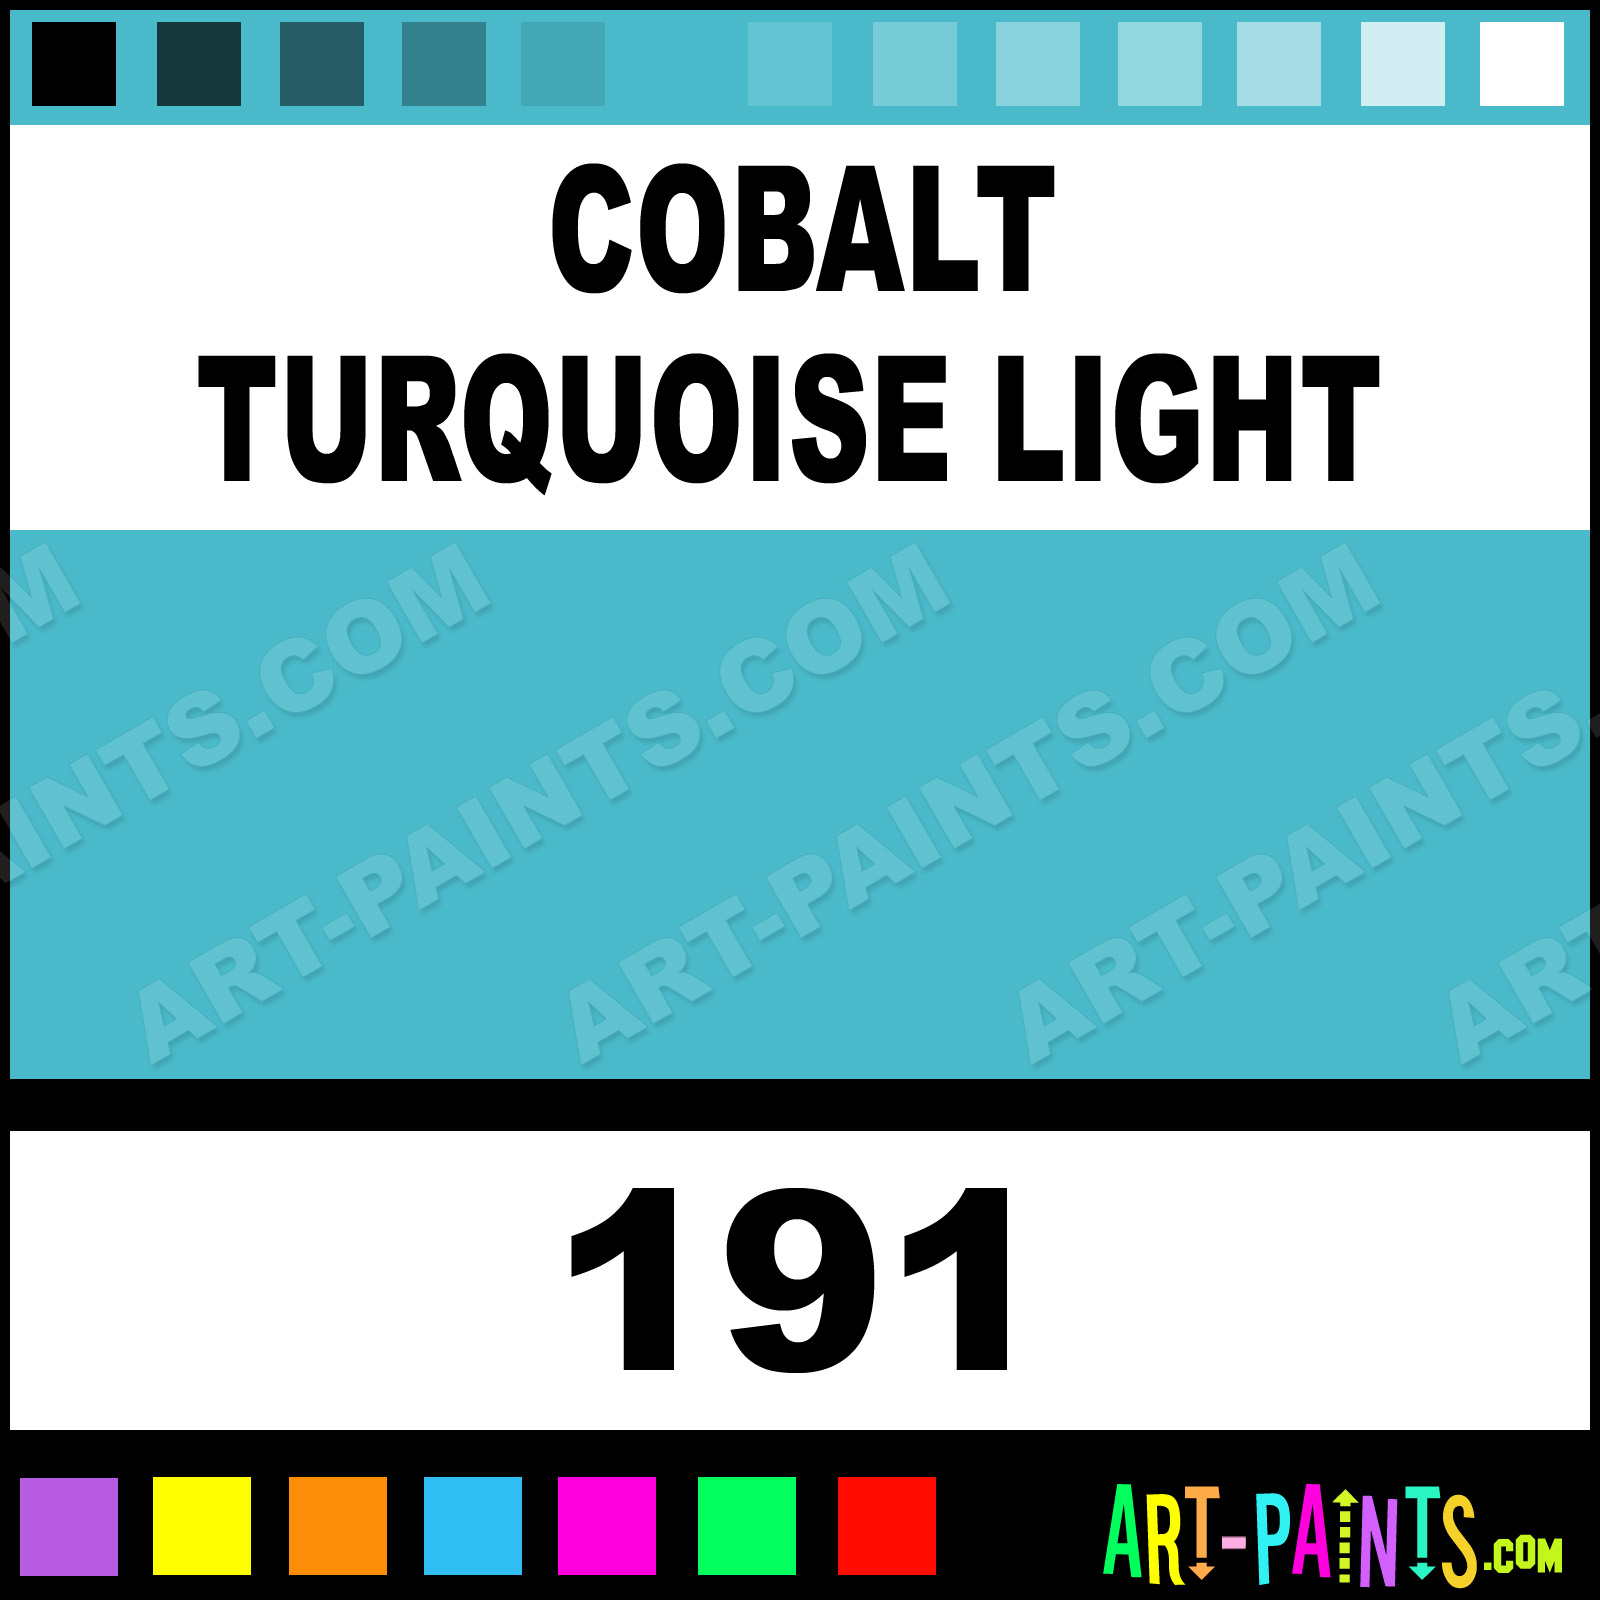 Cobalt Turquoise Light Artists Watercolor Paints 191 Cobalt Turquoise Light Paint Cobalt Turquoise Light Color Winsor And Newton Artists Paint 49baca Art Paints Com